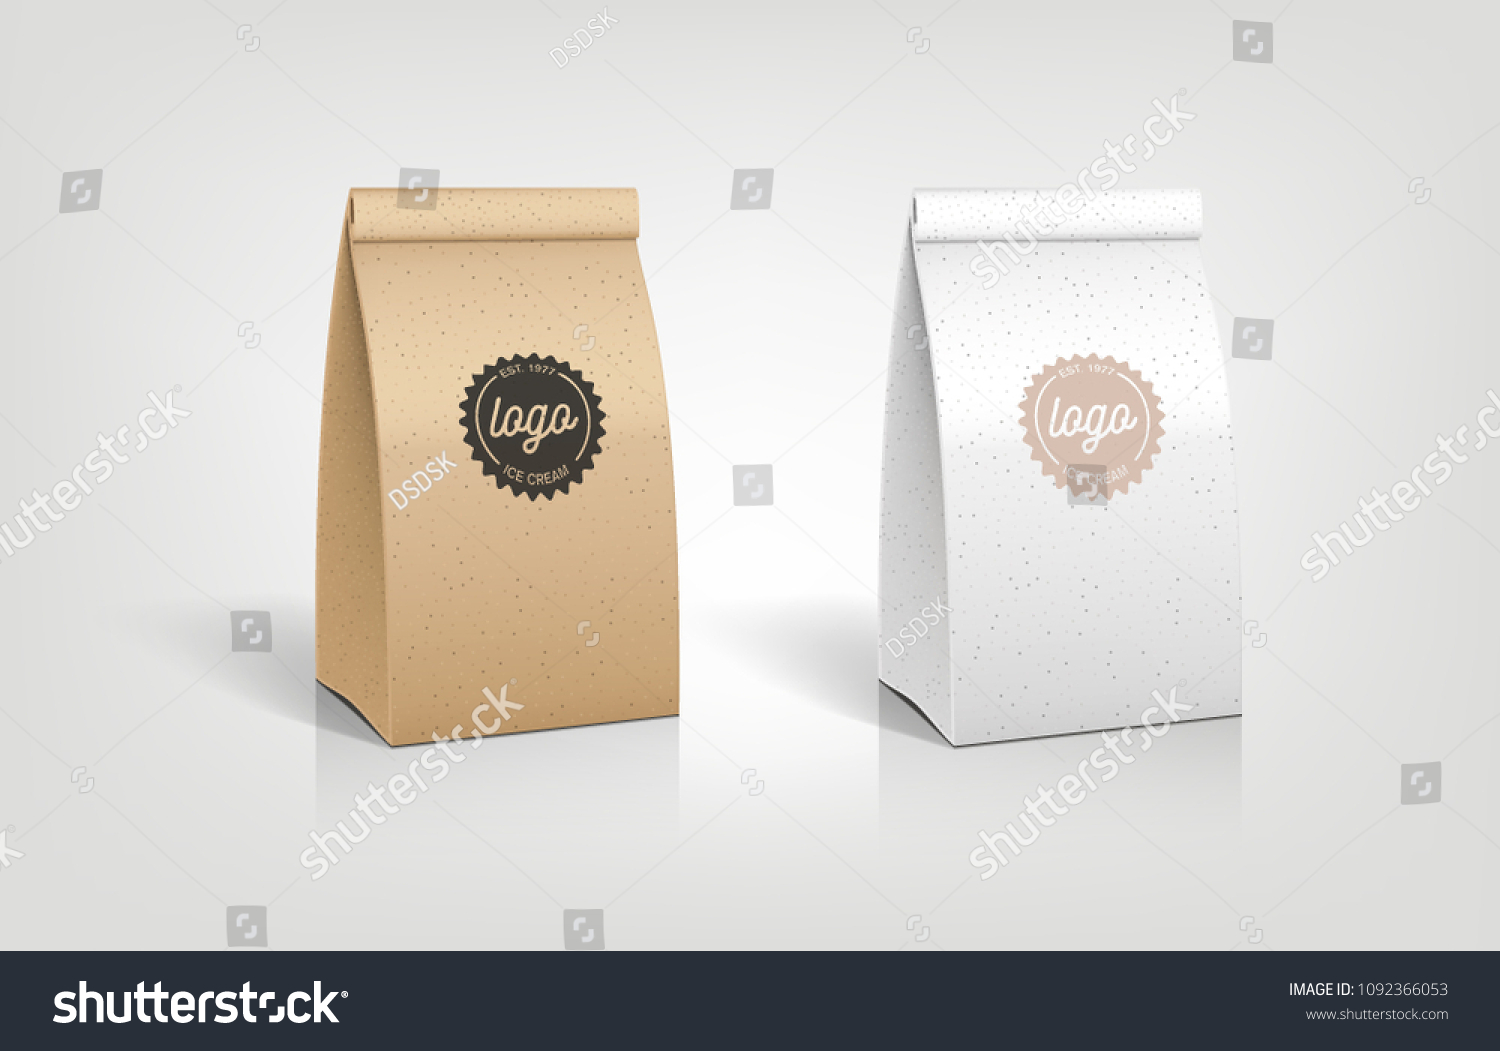 Craft Paper Bag Packaging Illustration Template Design Lunch Pouch Recycled Organic Food